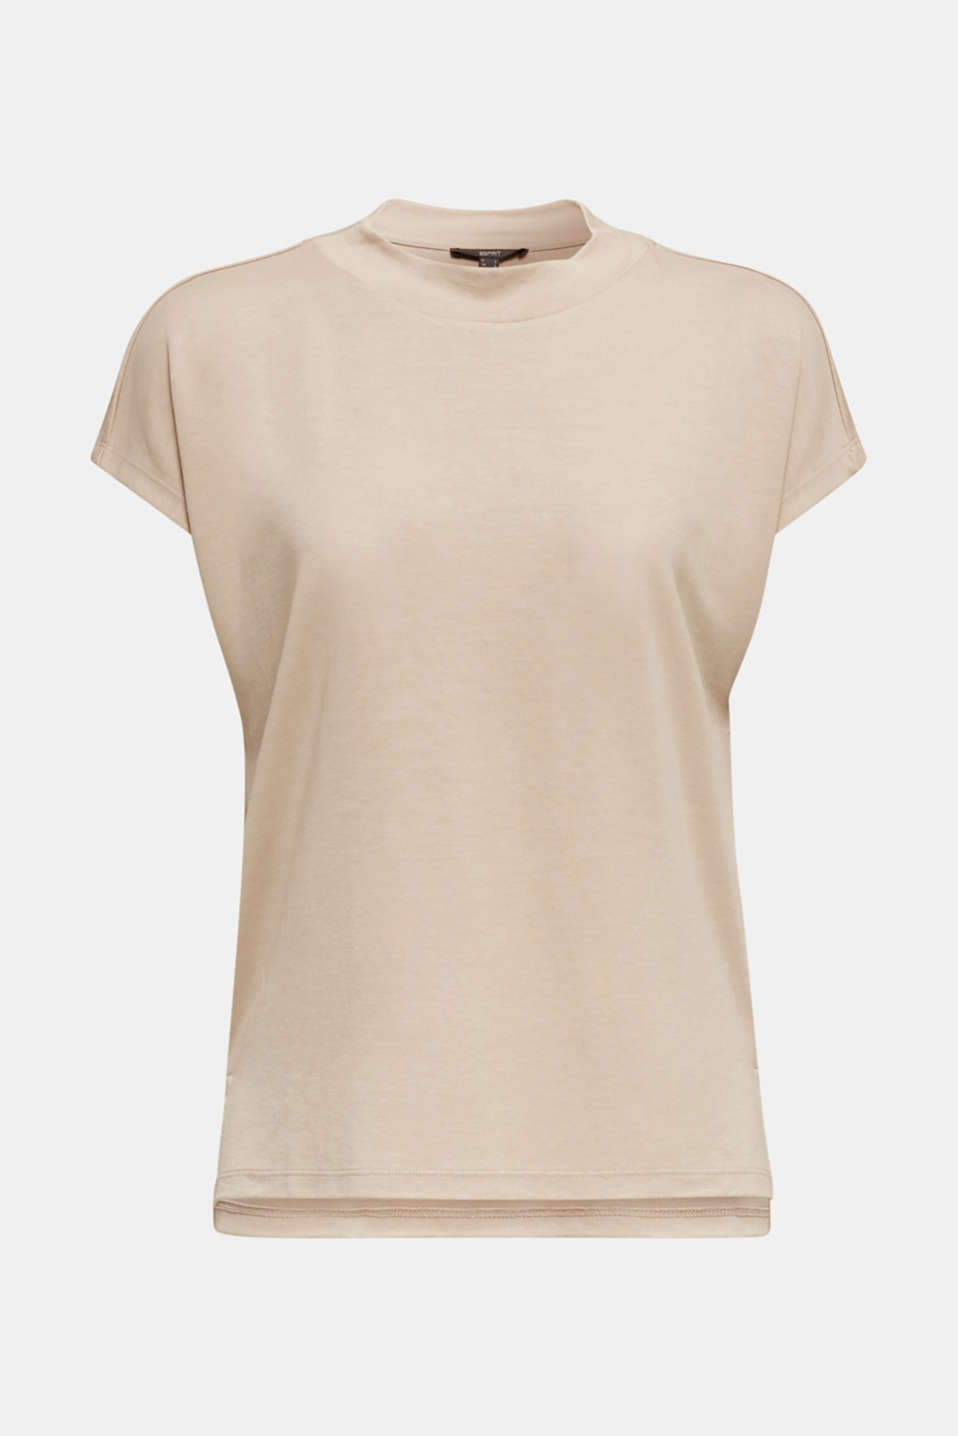 Piqué top with a wide neckline trim, BEIGE, detail image number 6